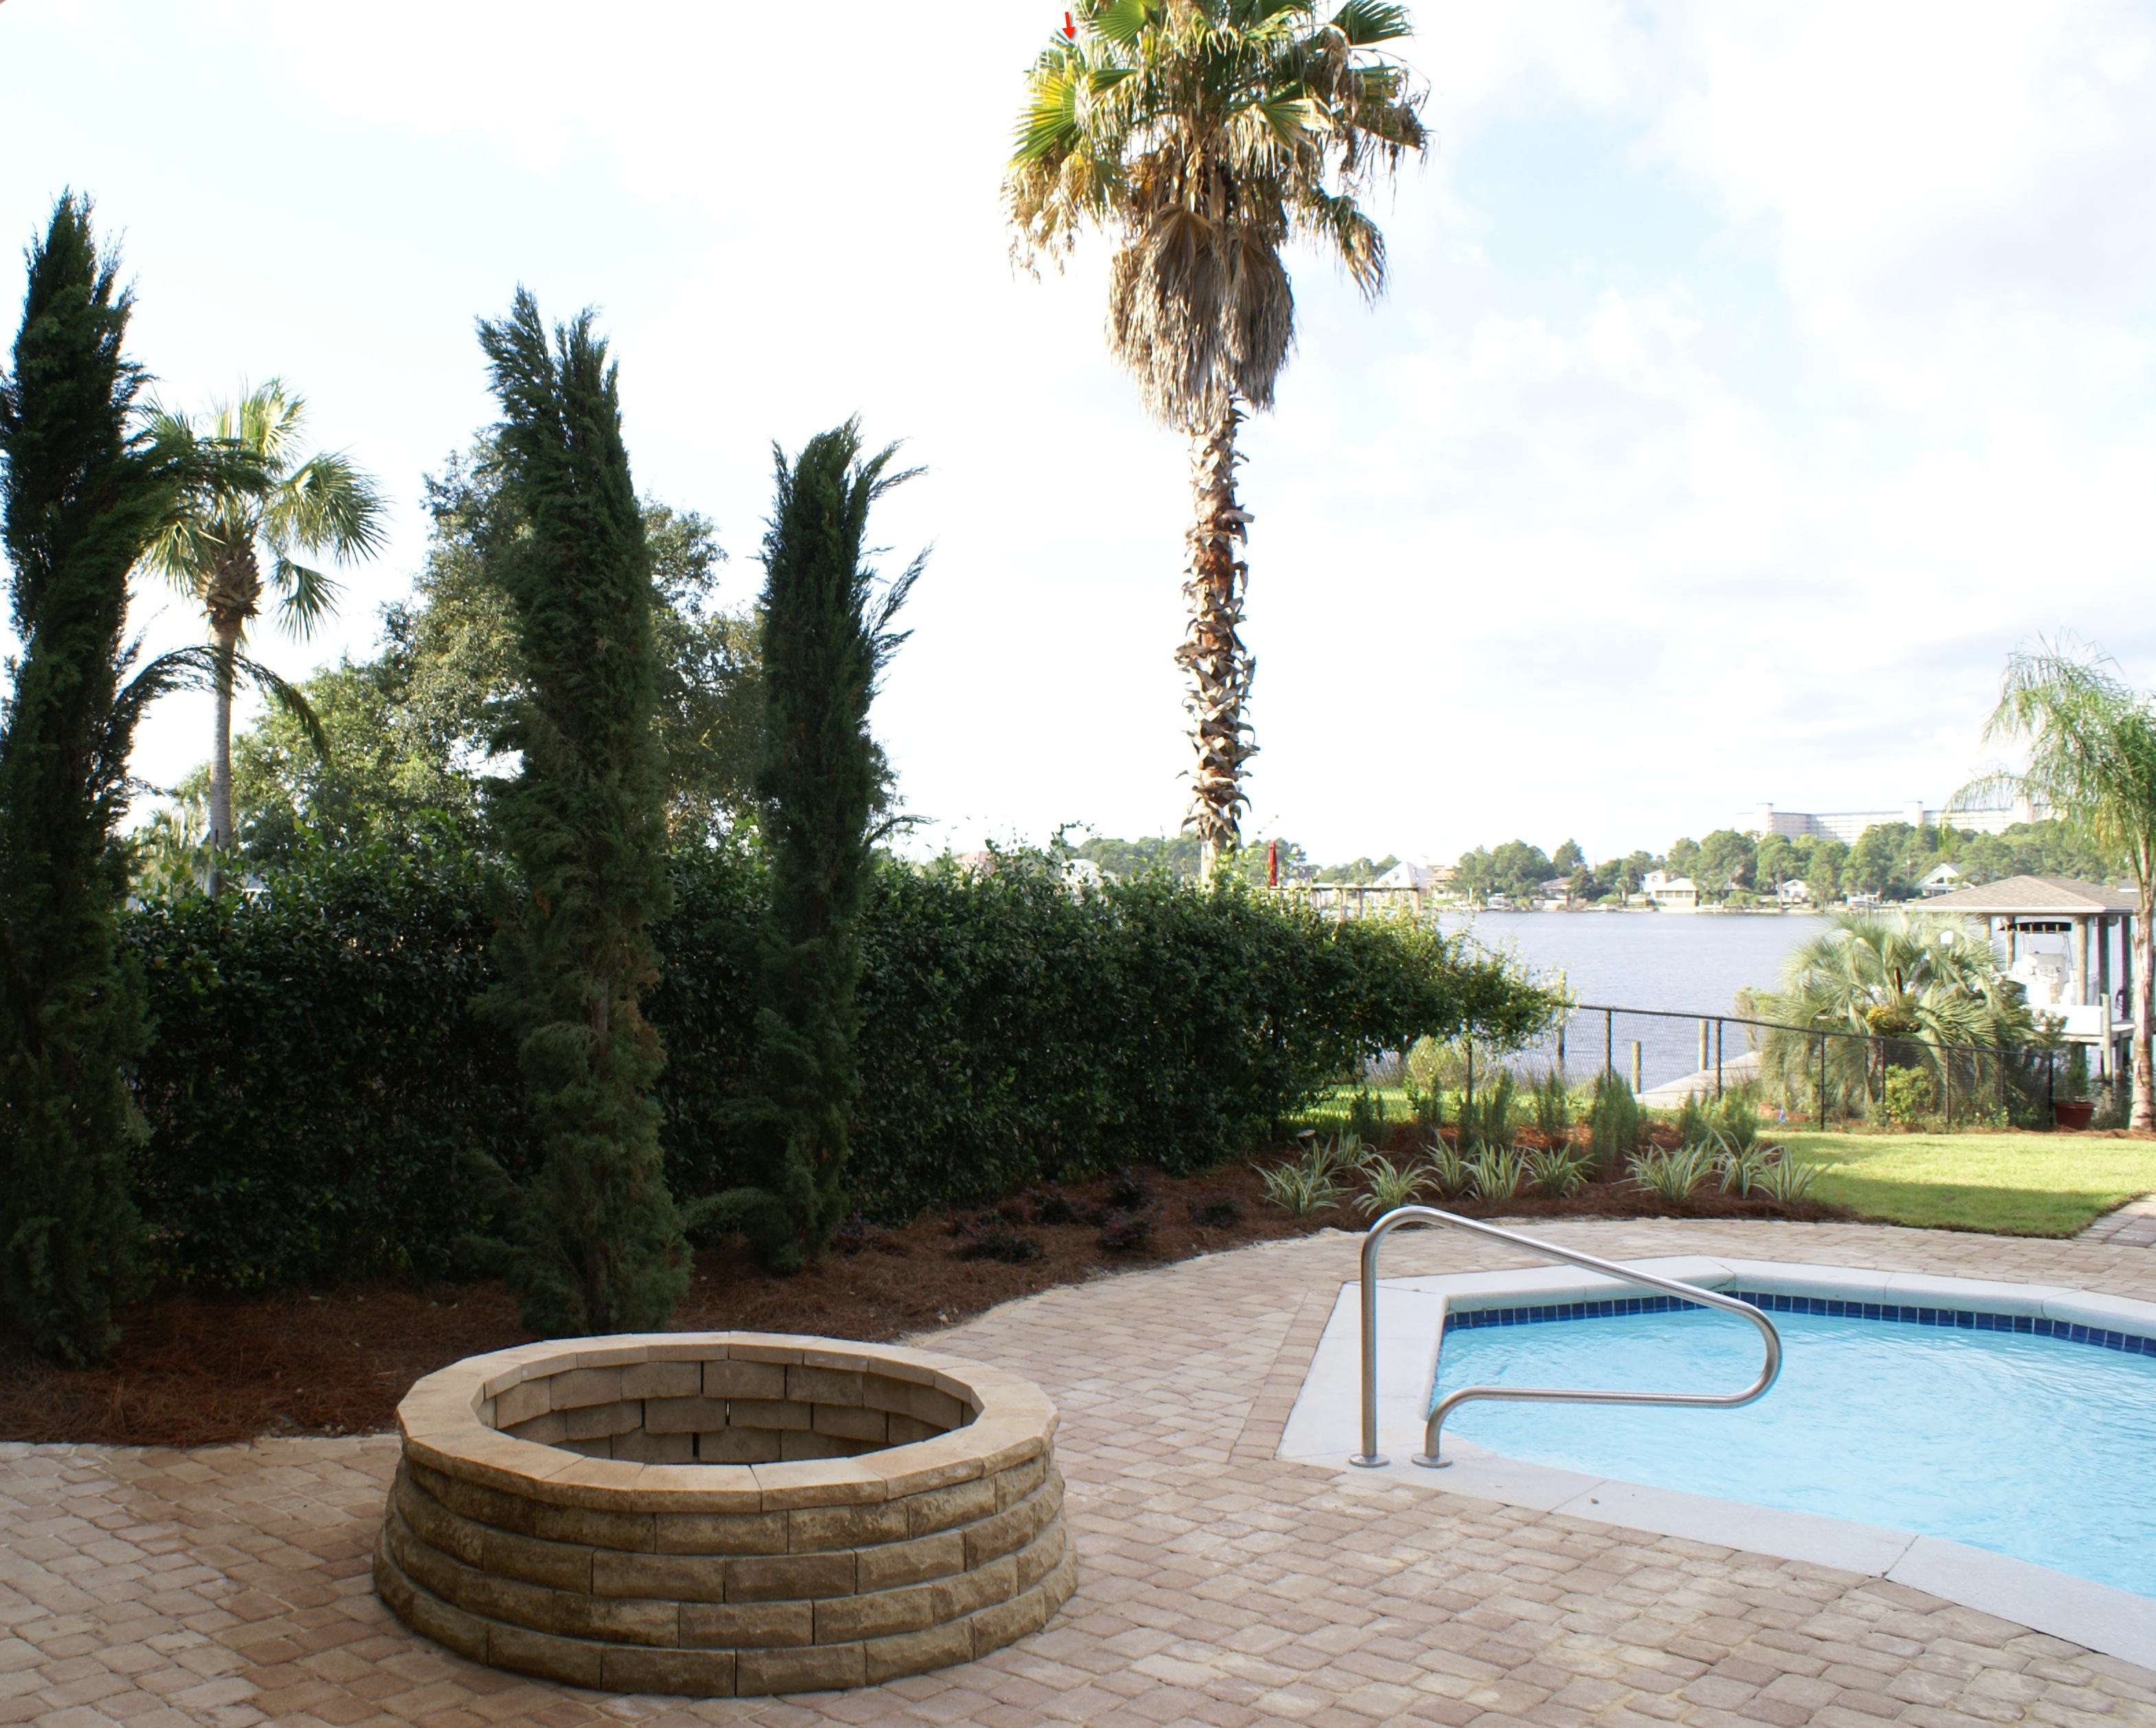 Residential Hardscape Landscaping & Construction Services